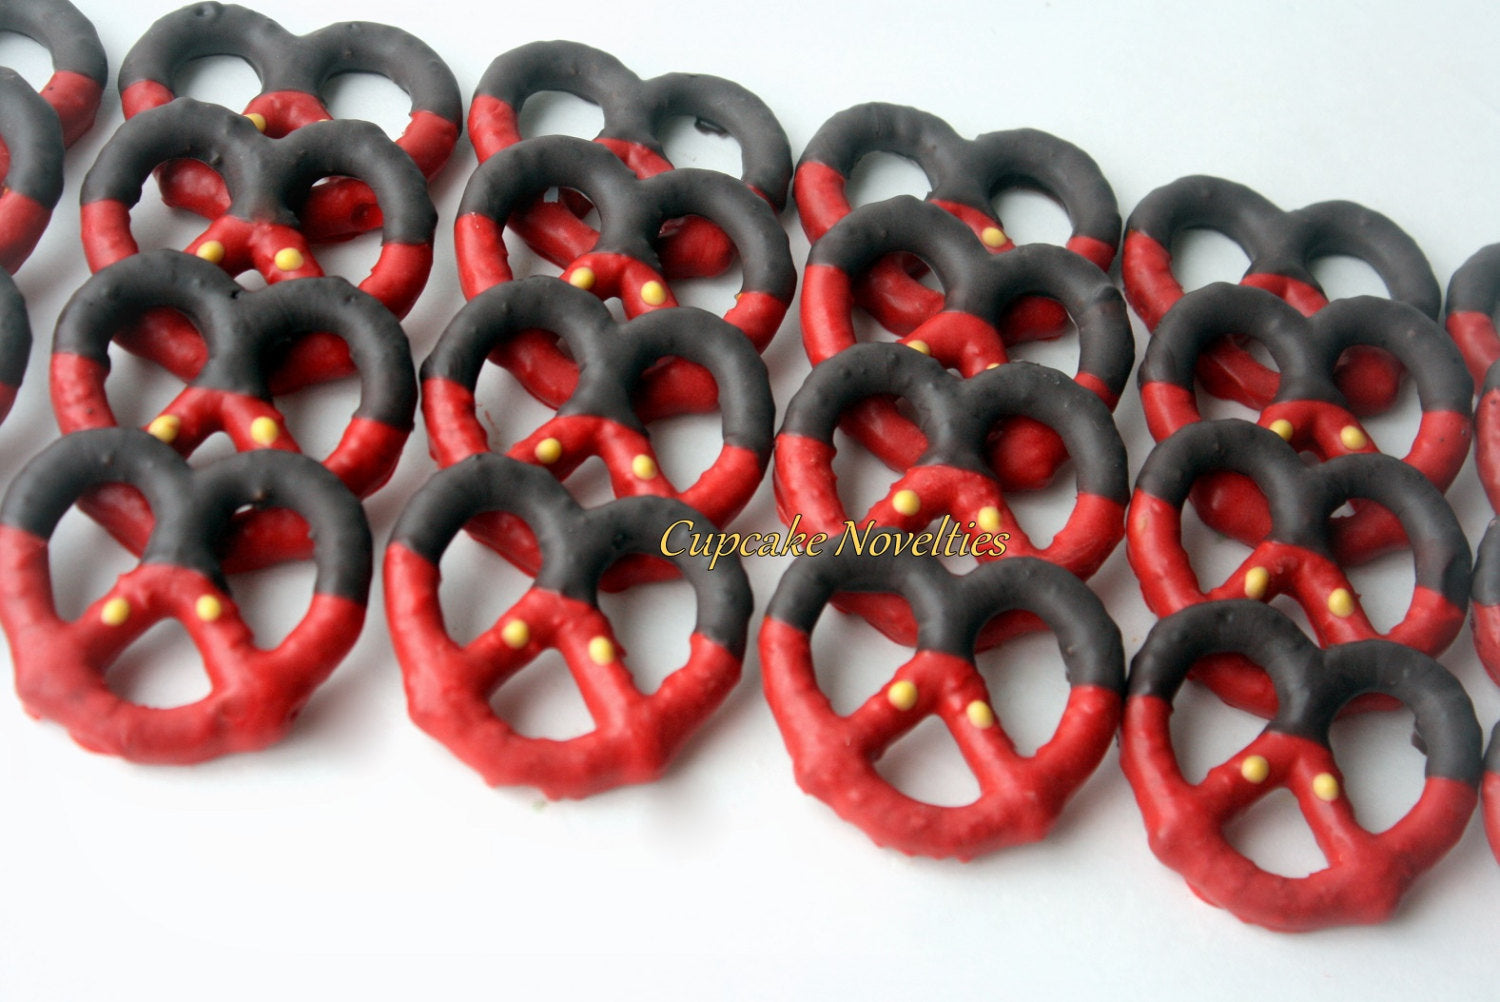 Red Black Yellow Buttons Boy Birthday Party Favors Boy Birthday Cookies Chocolate dipped Pretzels Outfit Cookies Dessert Table Treats Favors